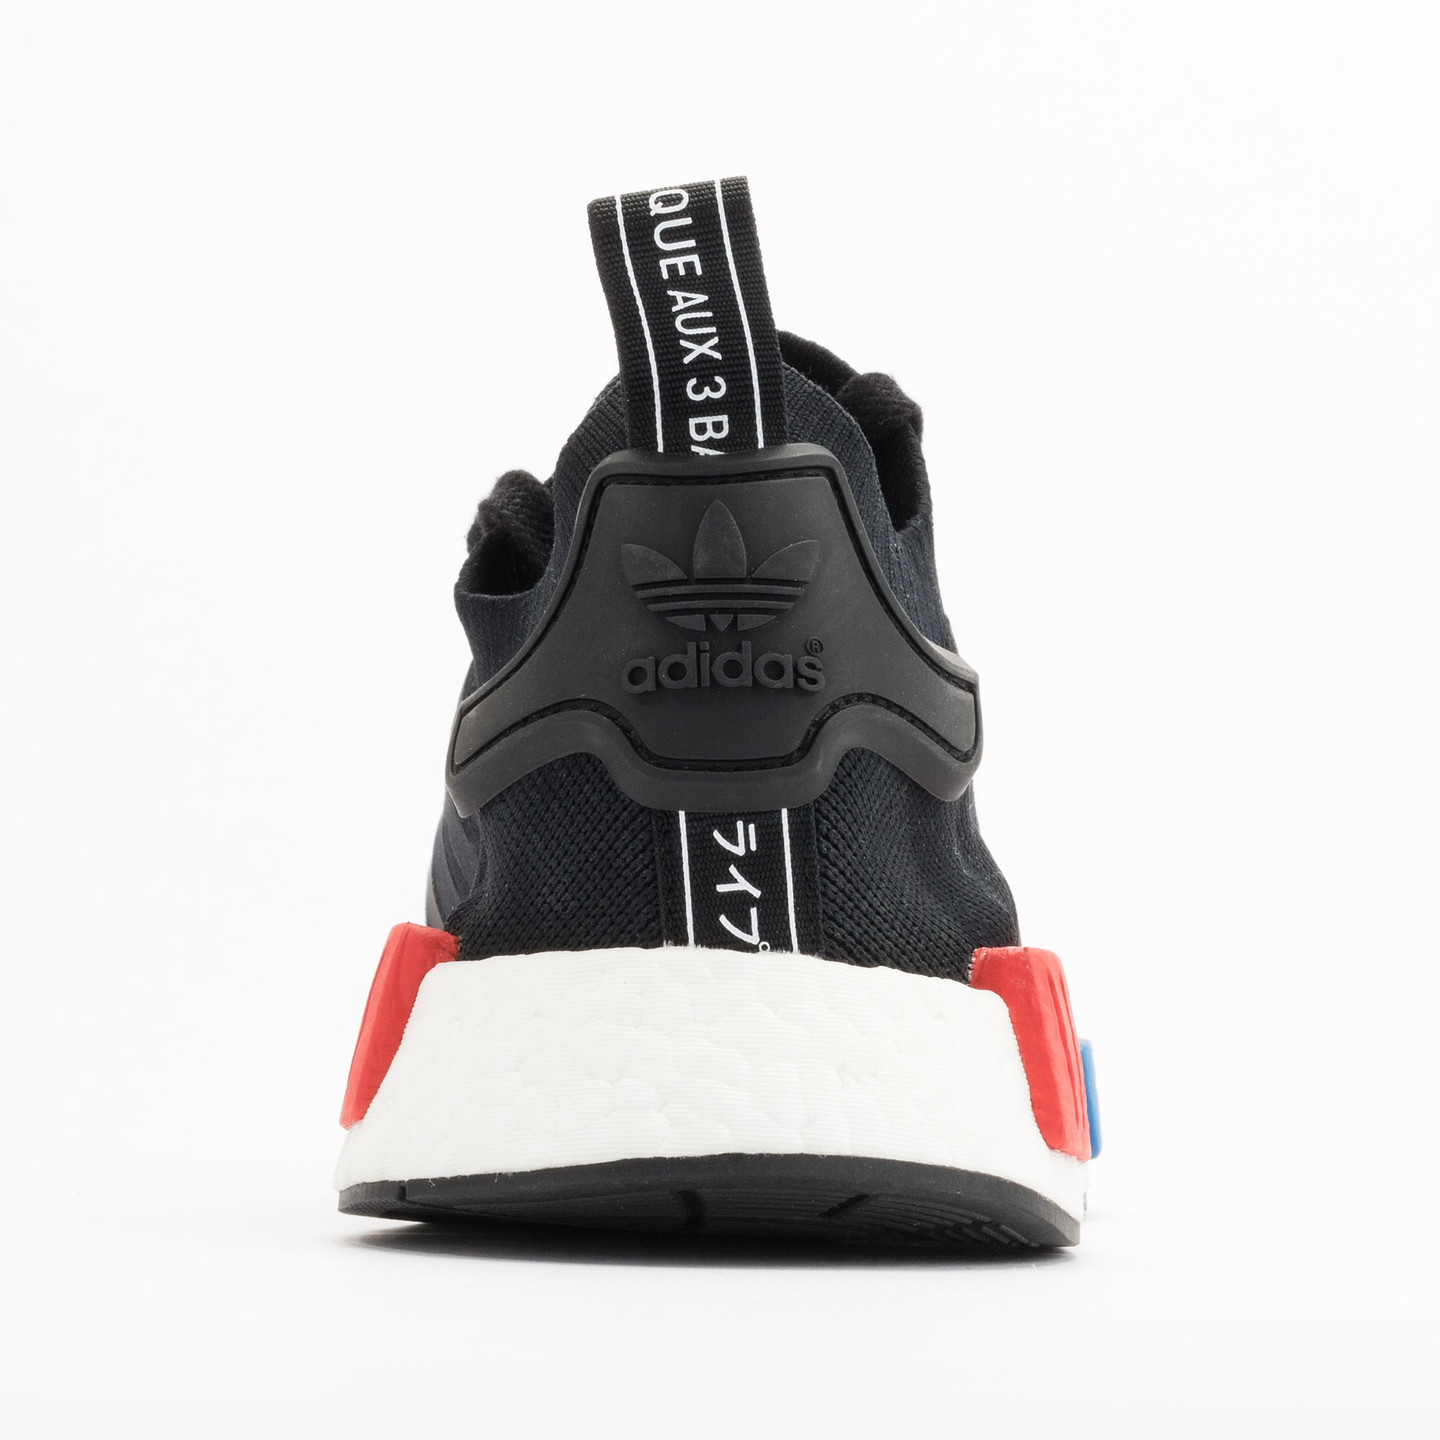 Adidas NMD Runner PK Primeknit Black / Red / Blue / White S79168-46